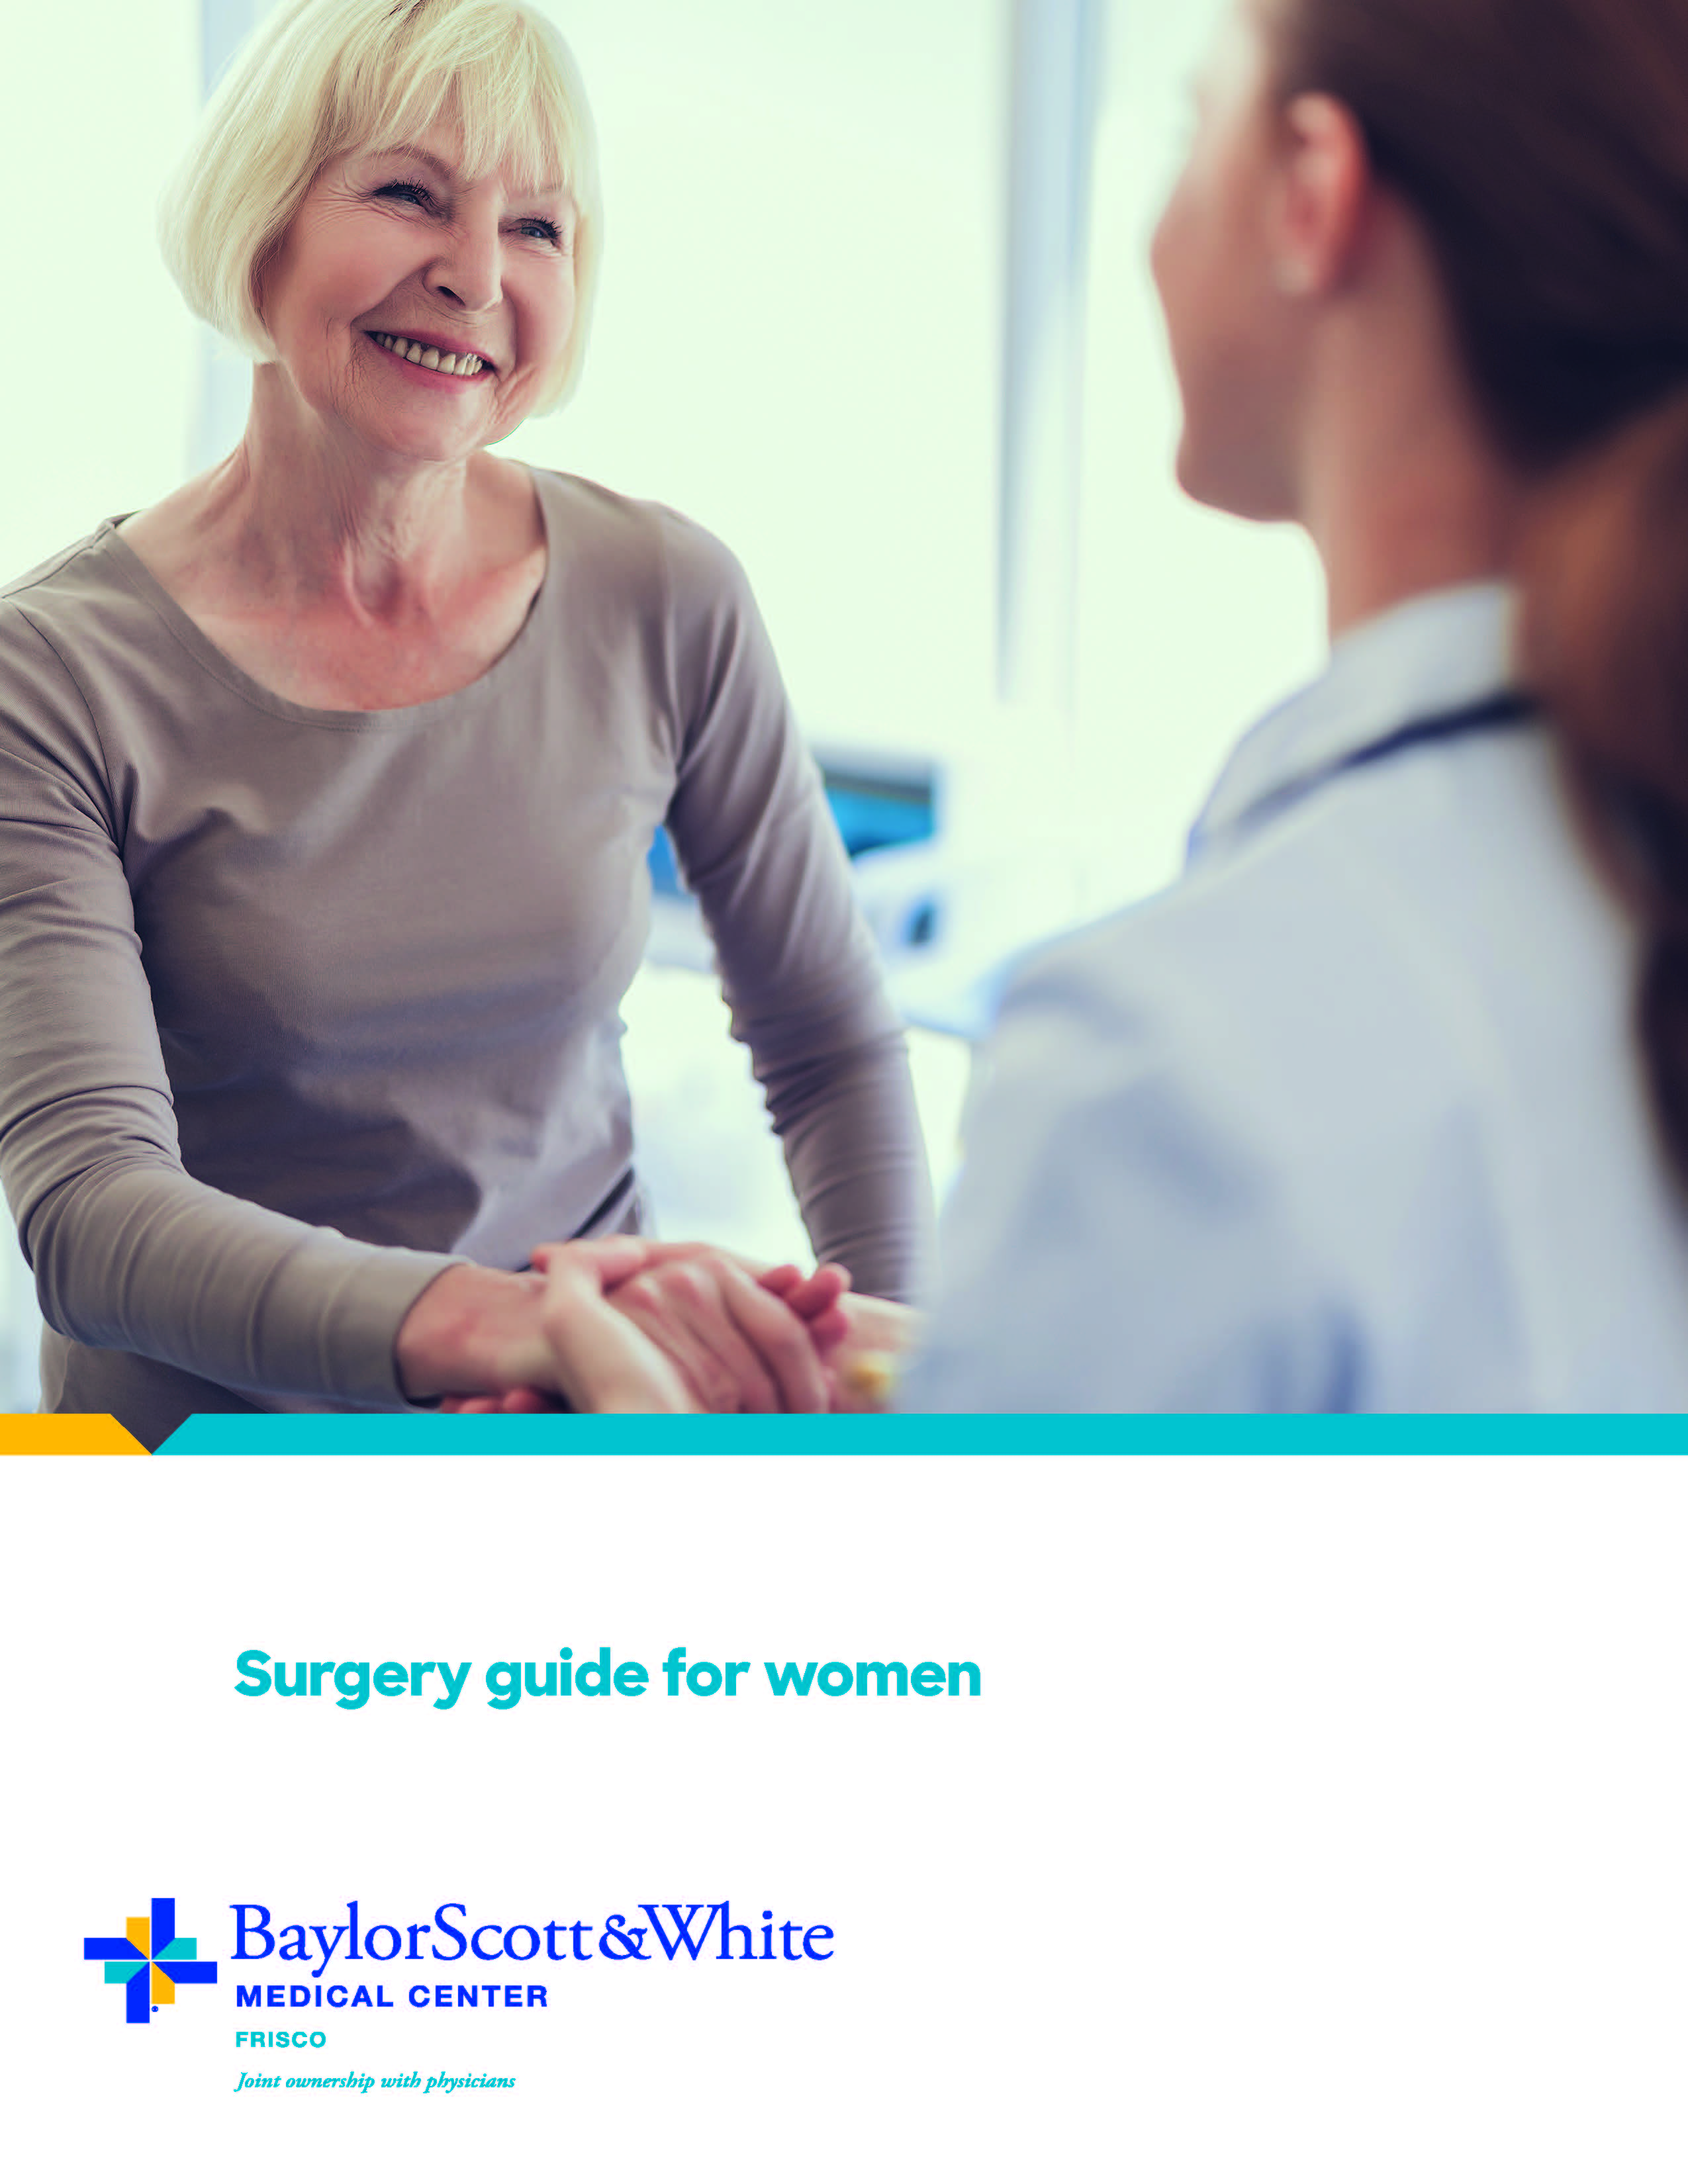 Print our Surgery Guide for Women